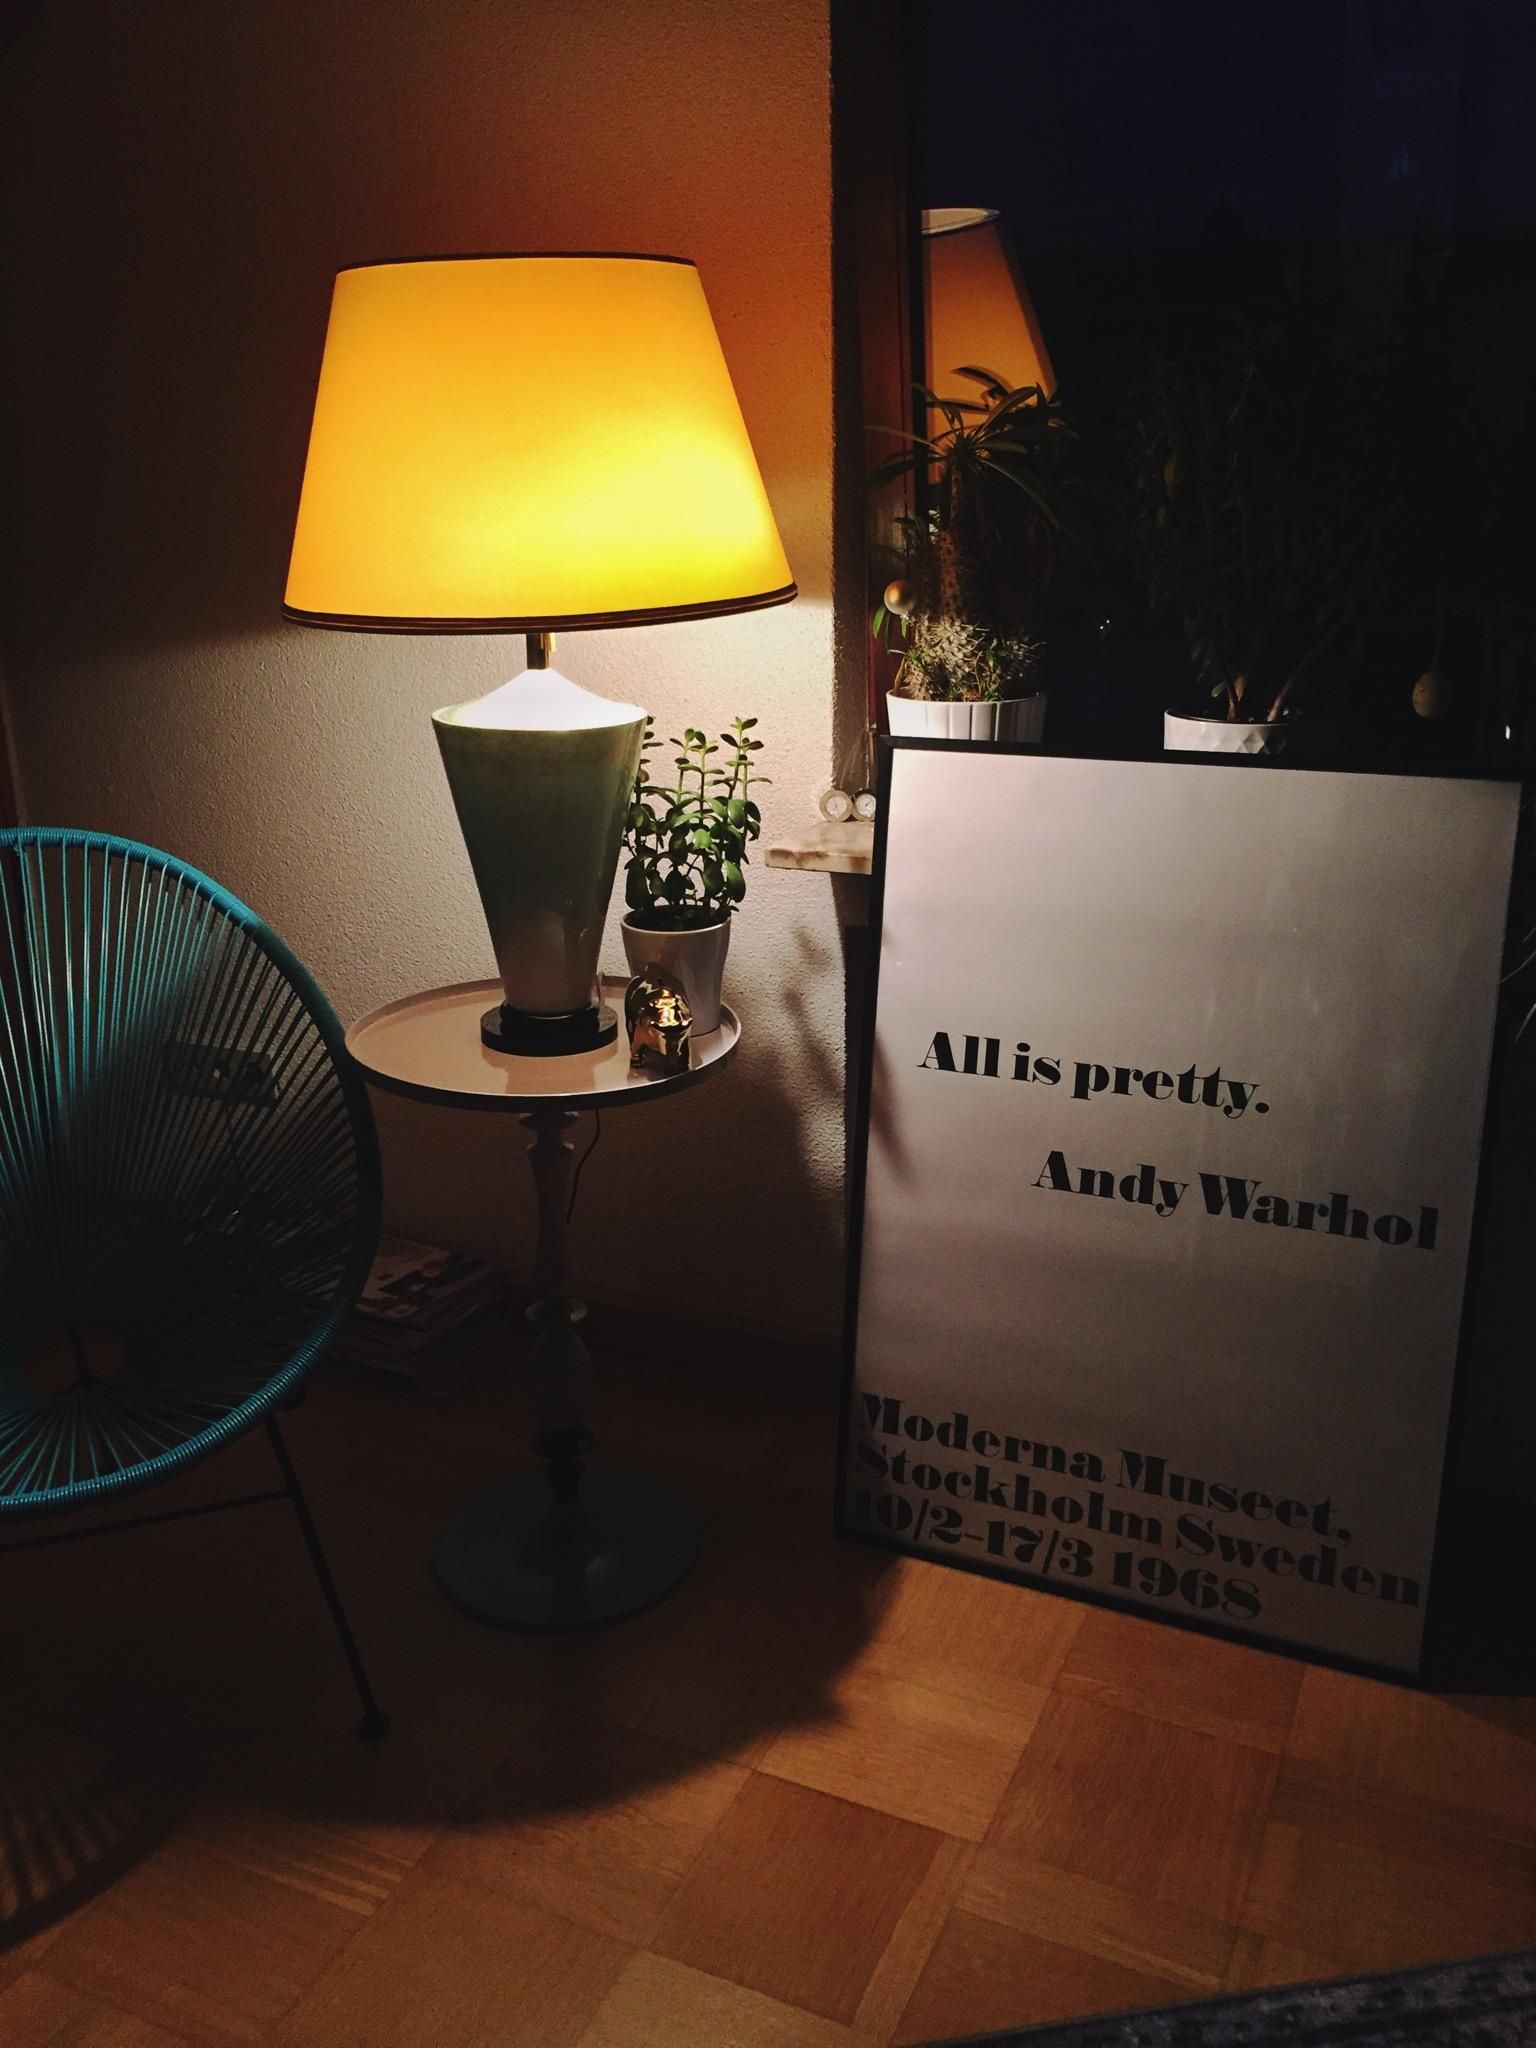 All is prettty - Andy Warhol 